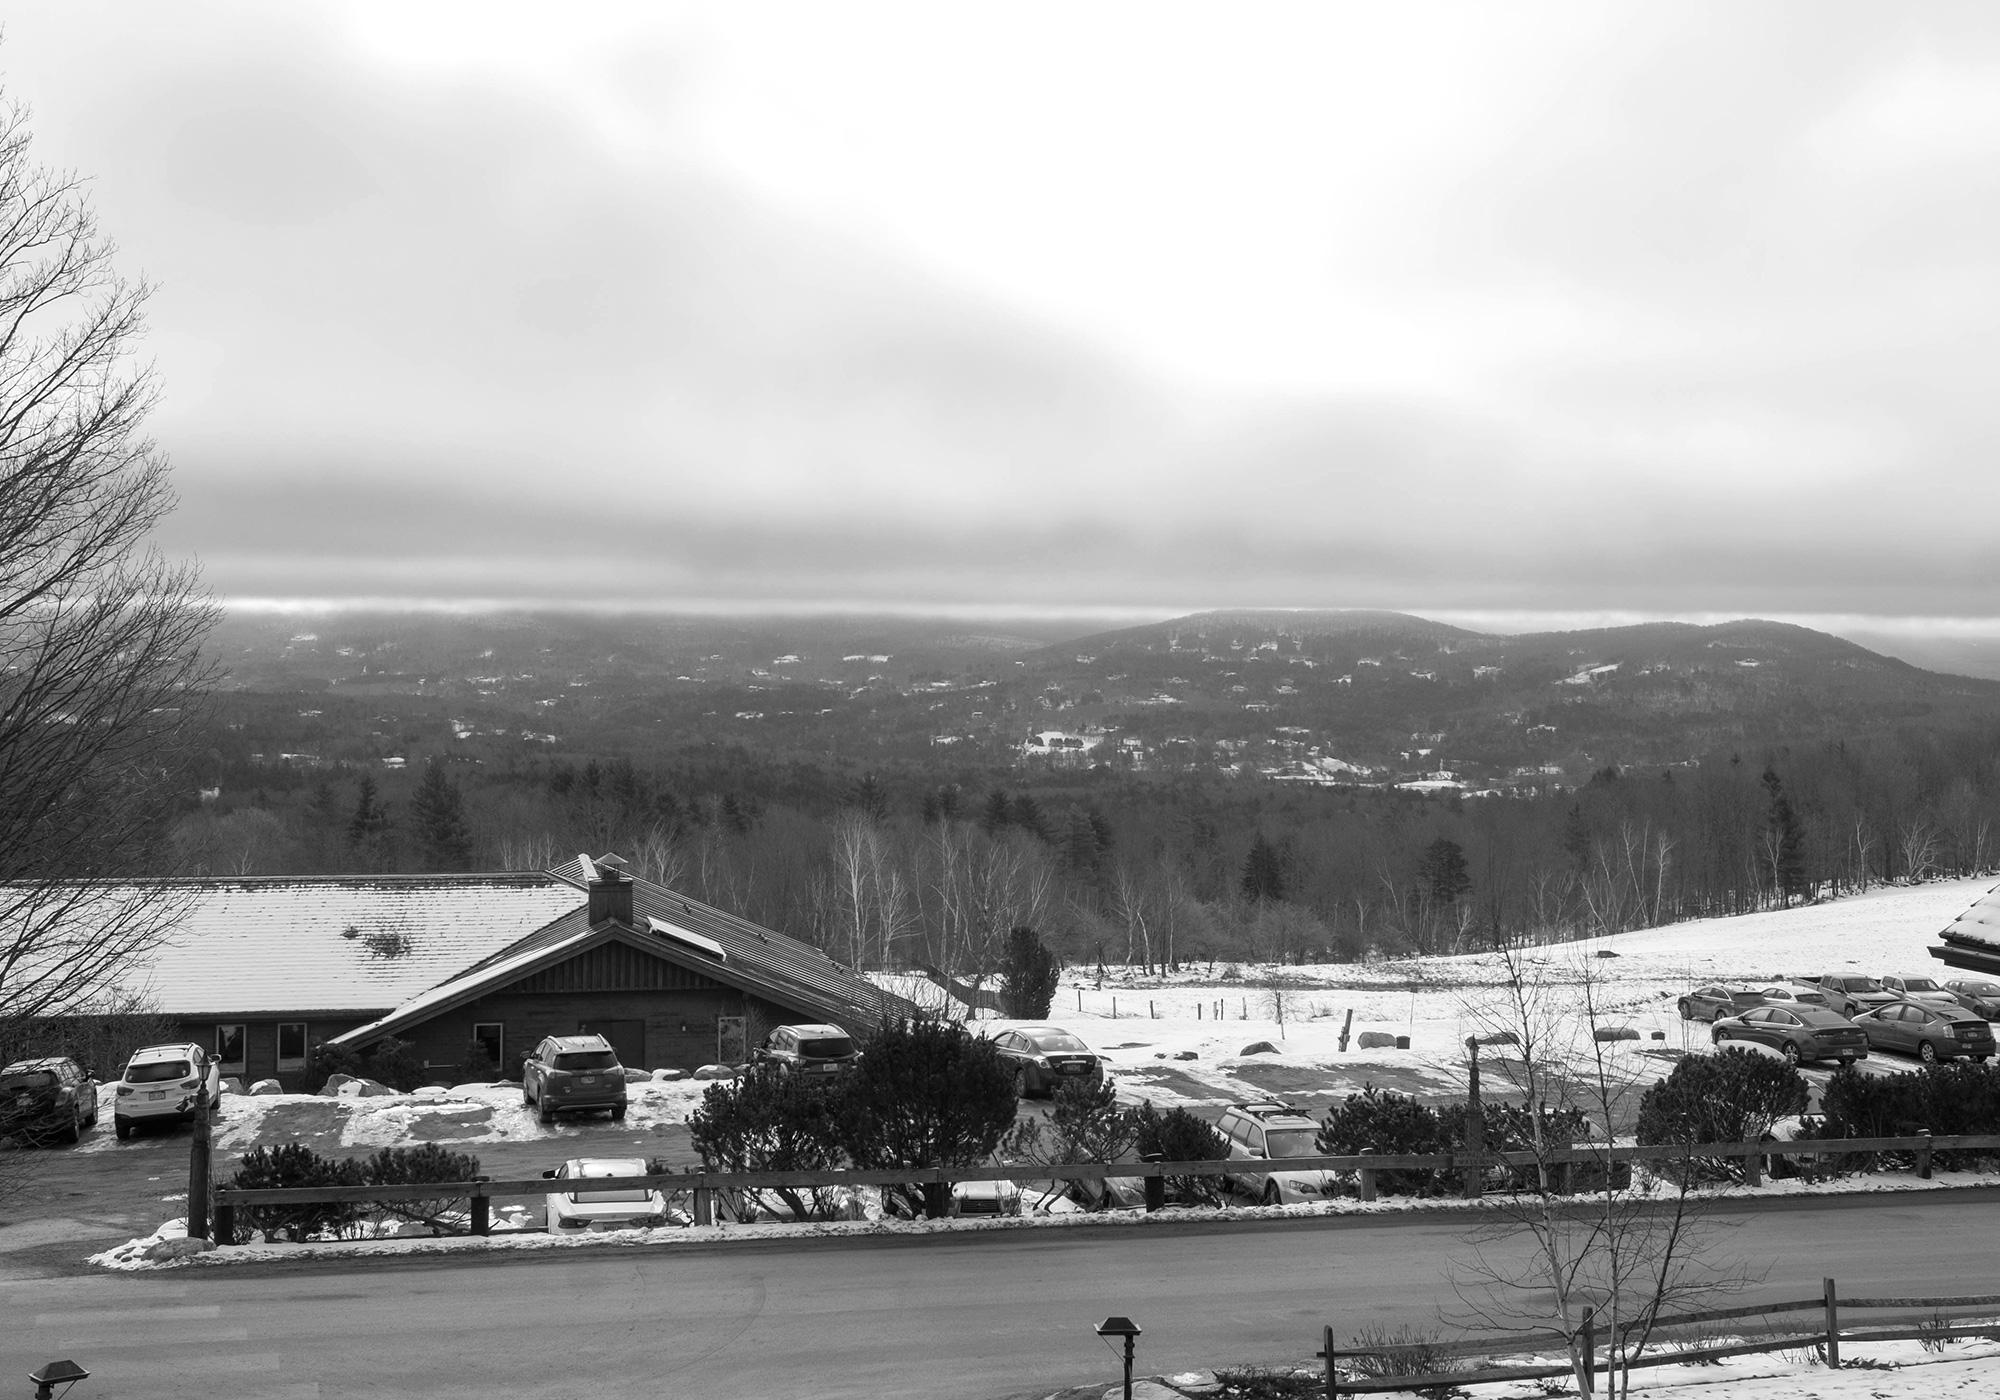 The view from the Trapp Family Lodge, overlooking Stowe.